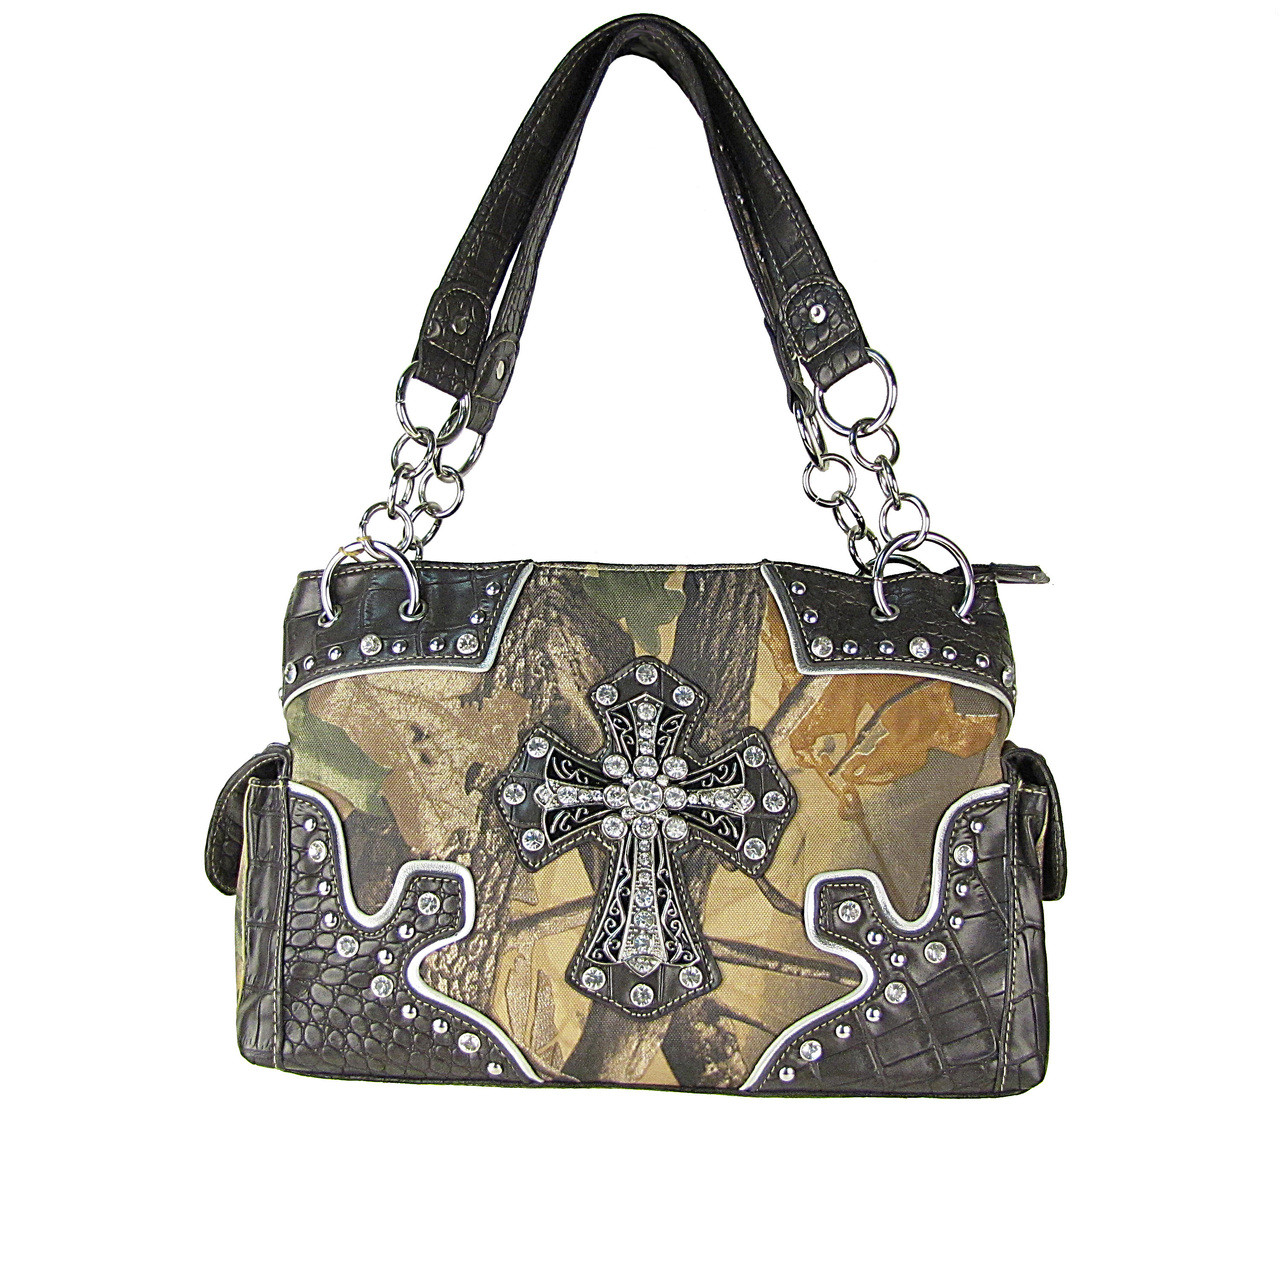 BROWN WESTERN MOSSY CAMO CROSS CONCEALED CARRY LOOK SHOULDER HANDBAG HB1-HC393-1BRN